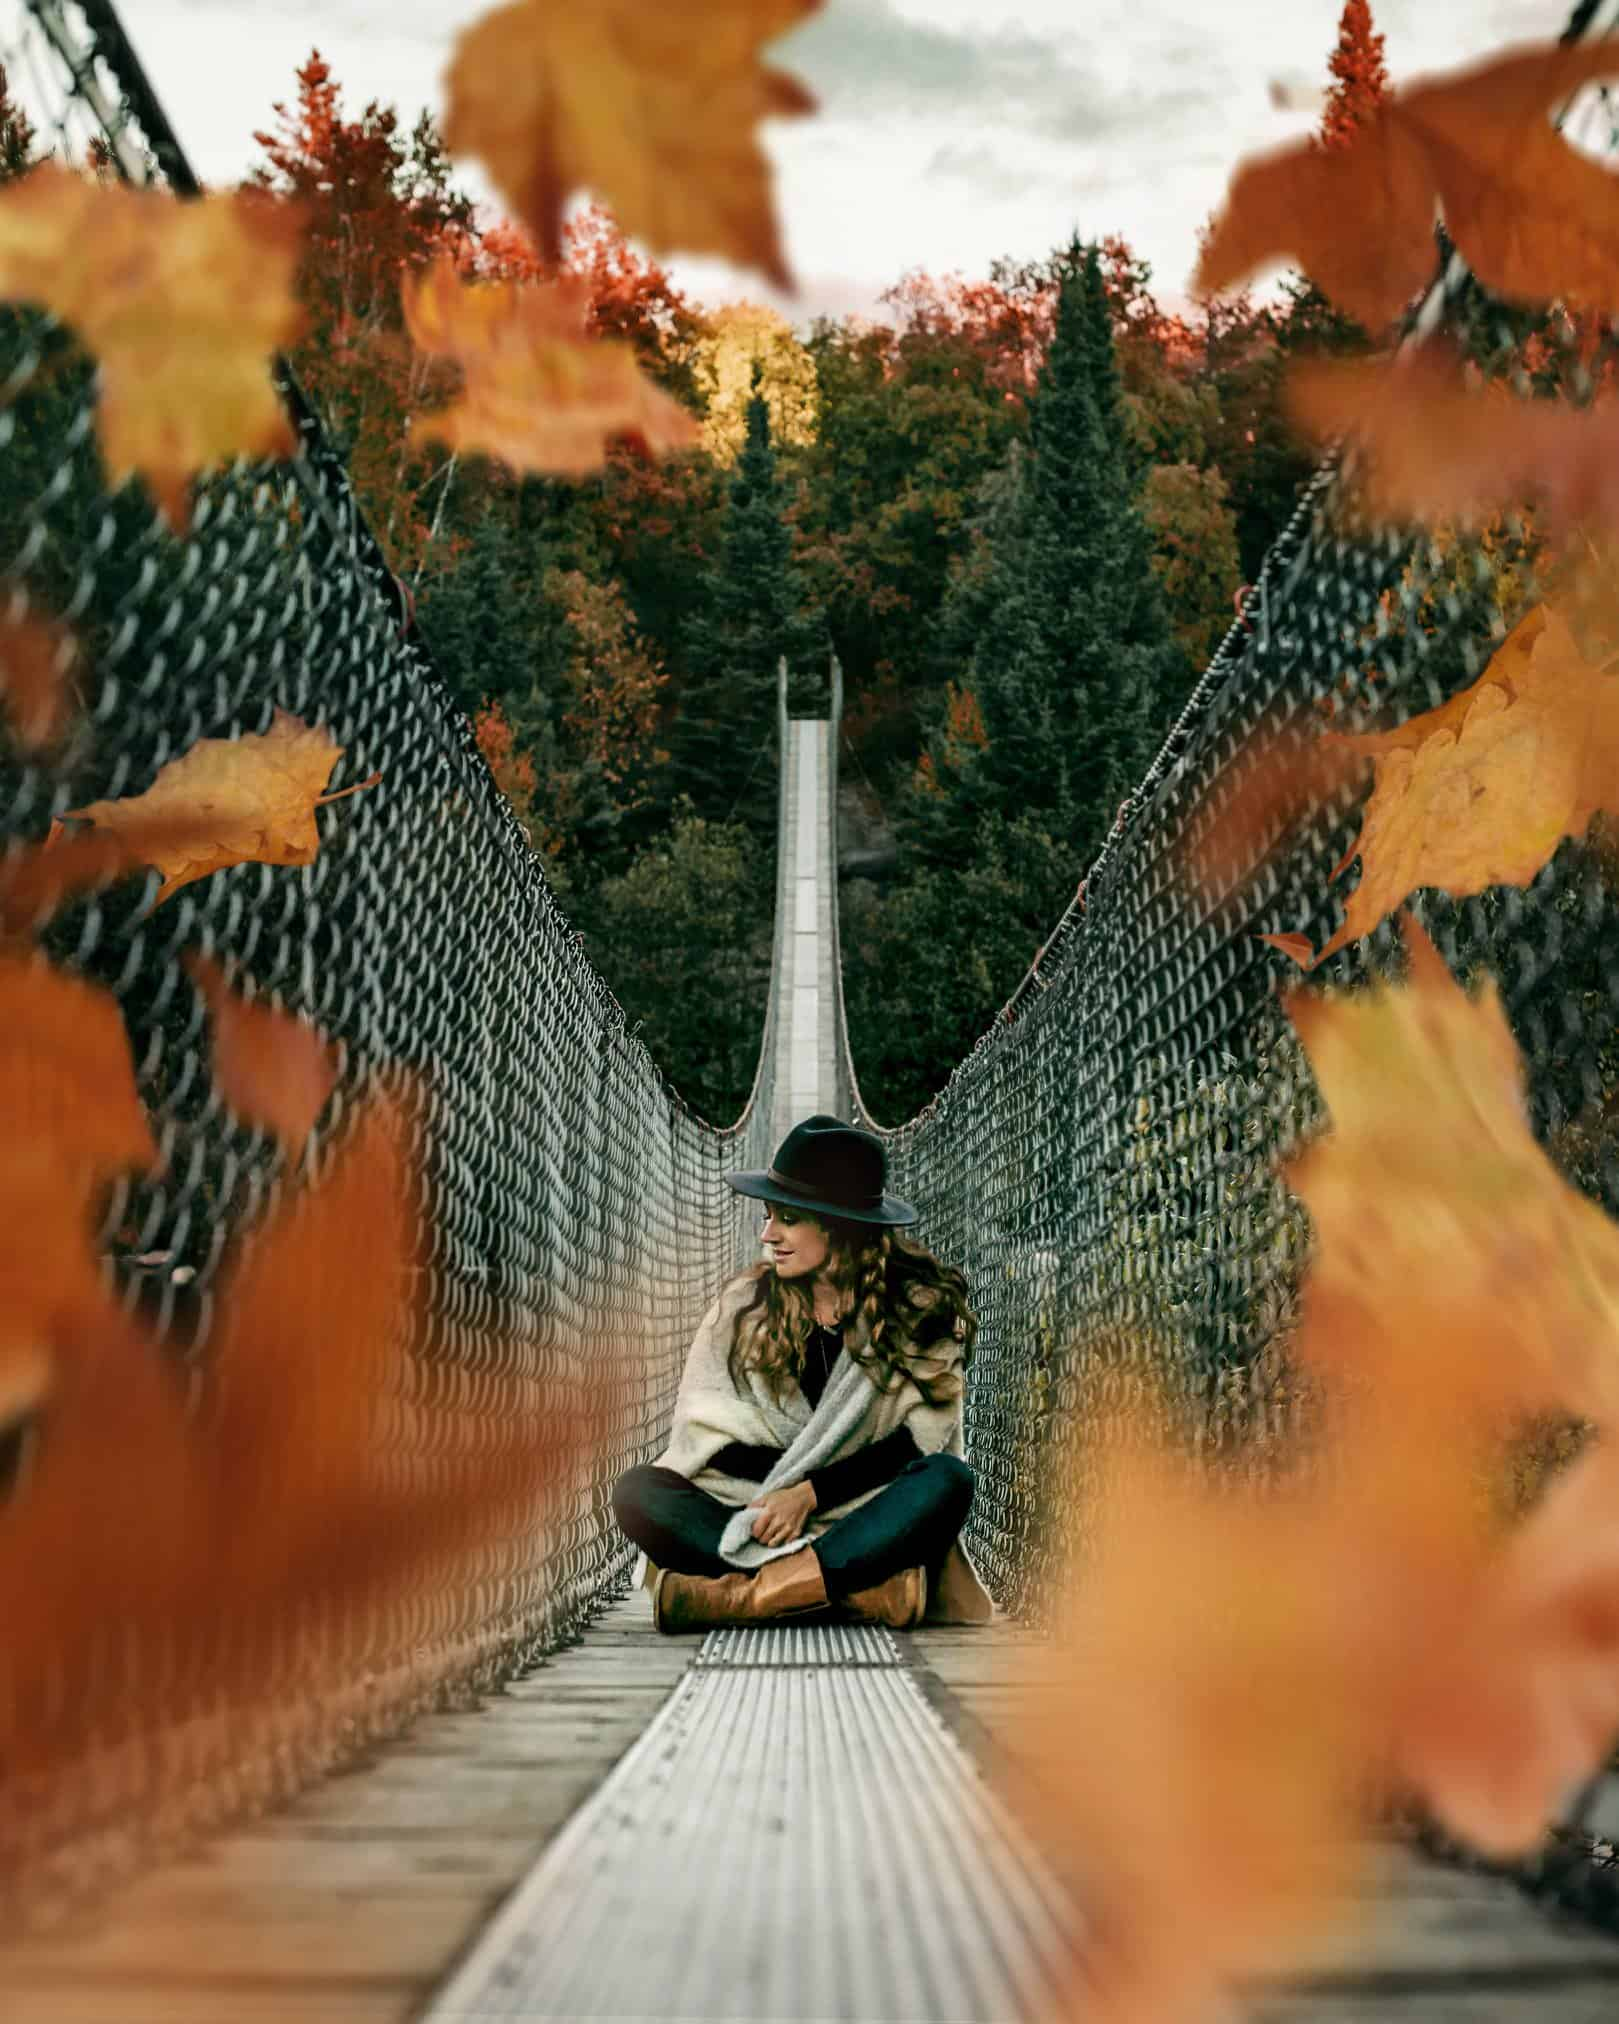 The leaves are falling and a woman is sitting on a suspension bridge